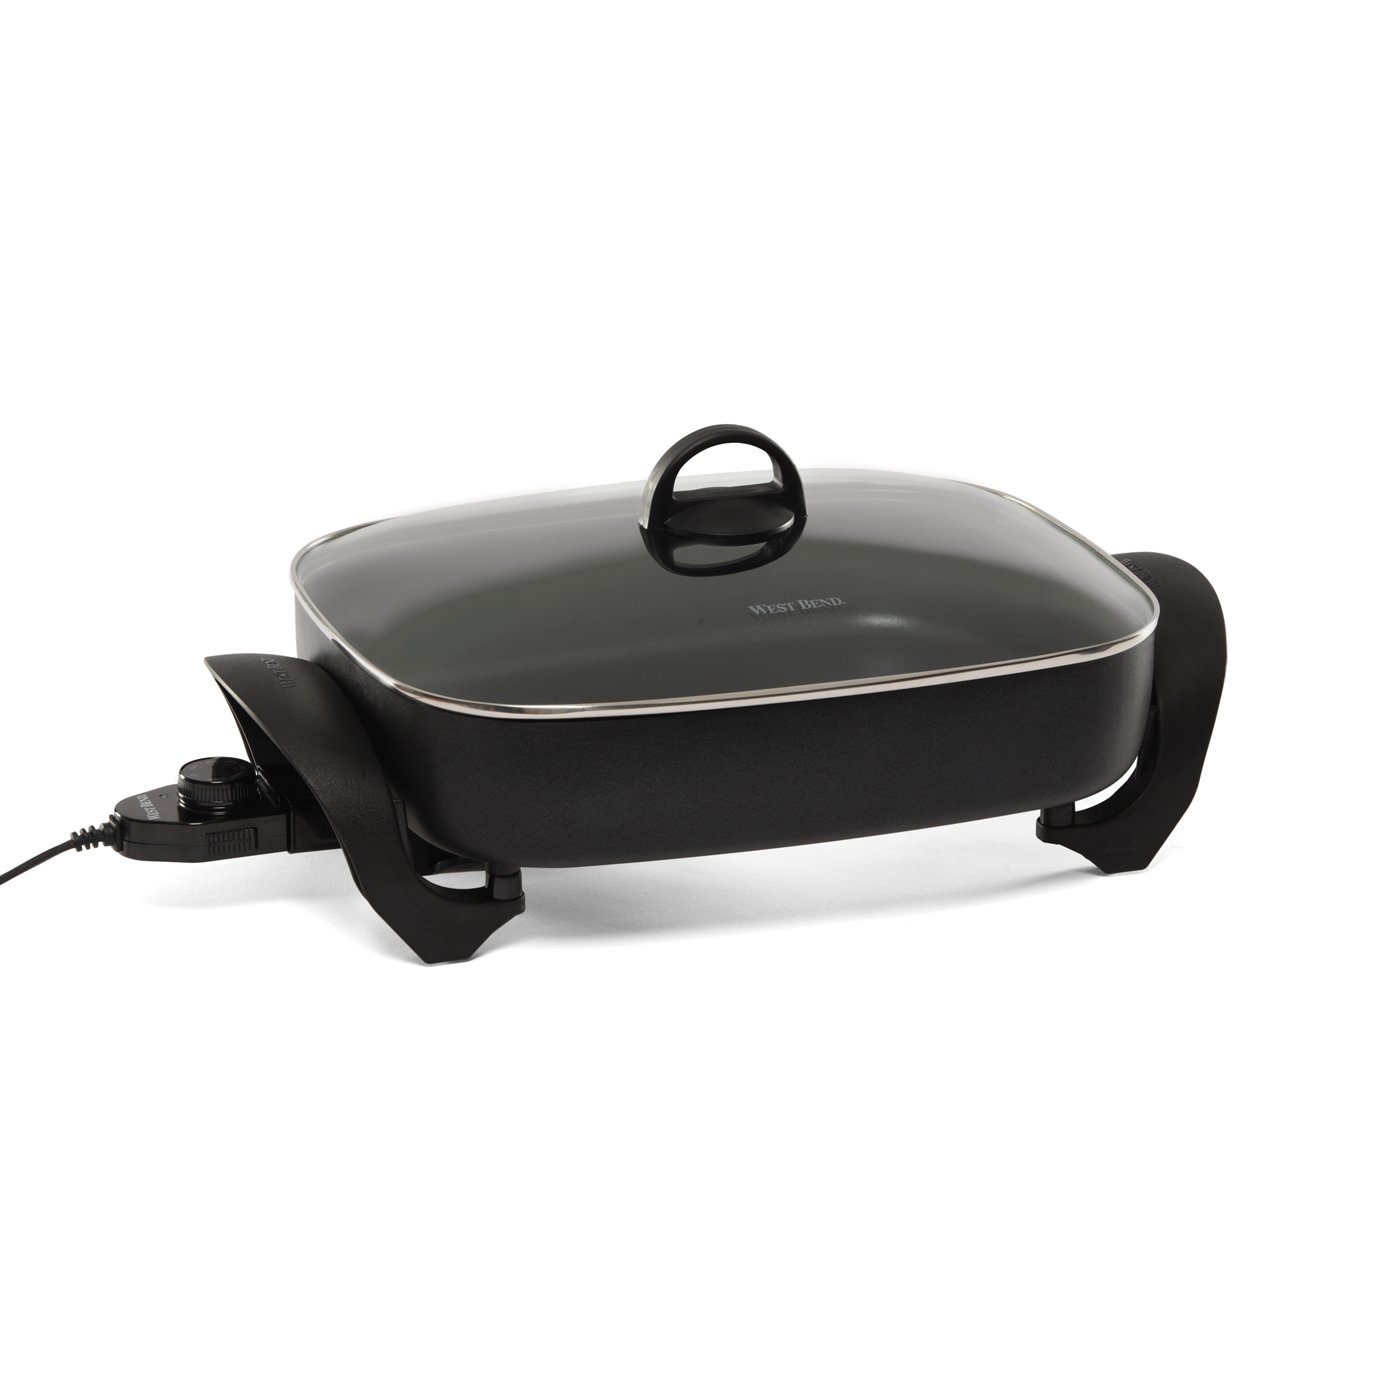 West Bend 72215 Electric Extra-Deep Oblong 12-by-14.5-Inch Nonstick Skillet (Discontinued by Manufacturer)